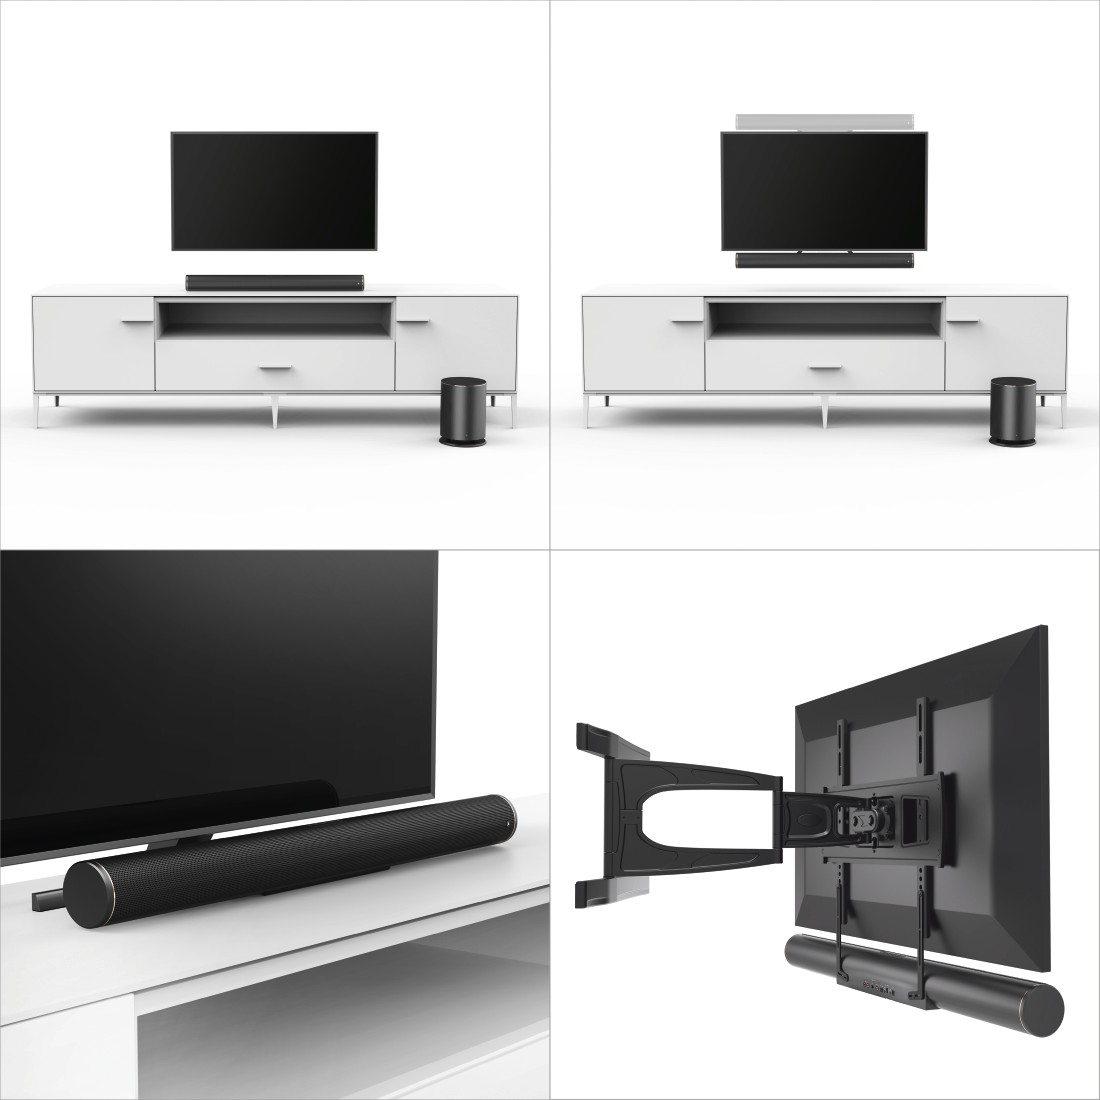 awx5 Druckfähige Anwendung 5 - Hama, Smart-TV-Soundbar 2.1 SIRIUM4000ABT, Wireless Subwoofer/Alexa/Bluetooth